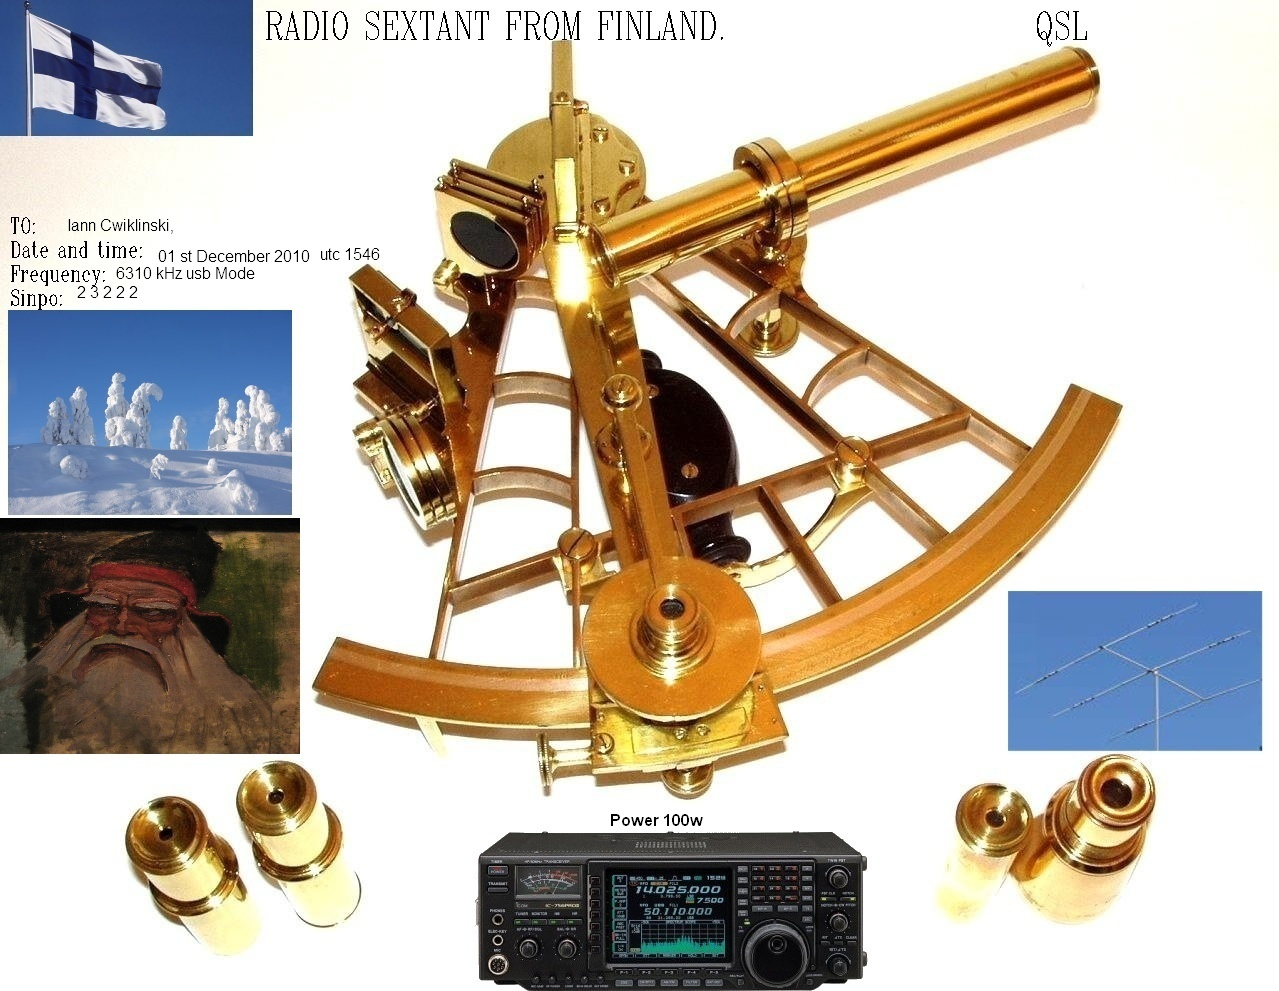 Pirate Radio QSL card - Radio Sextant